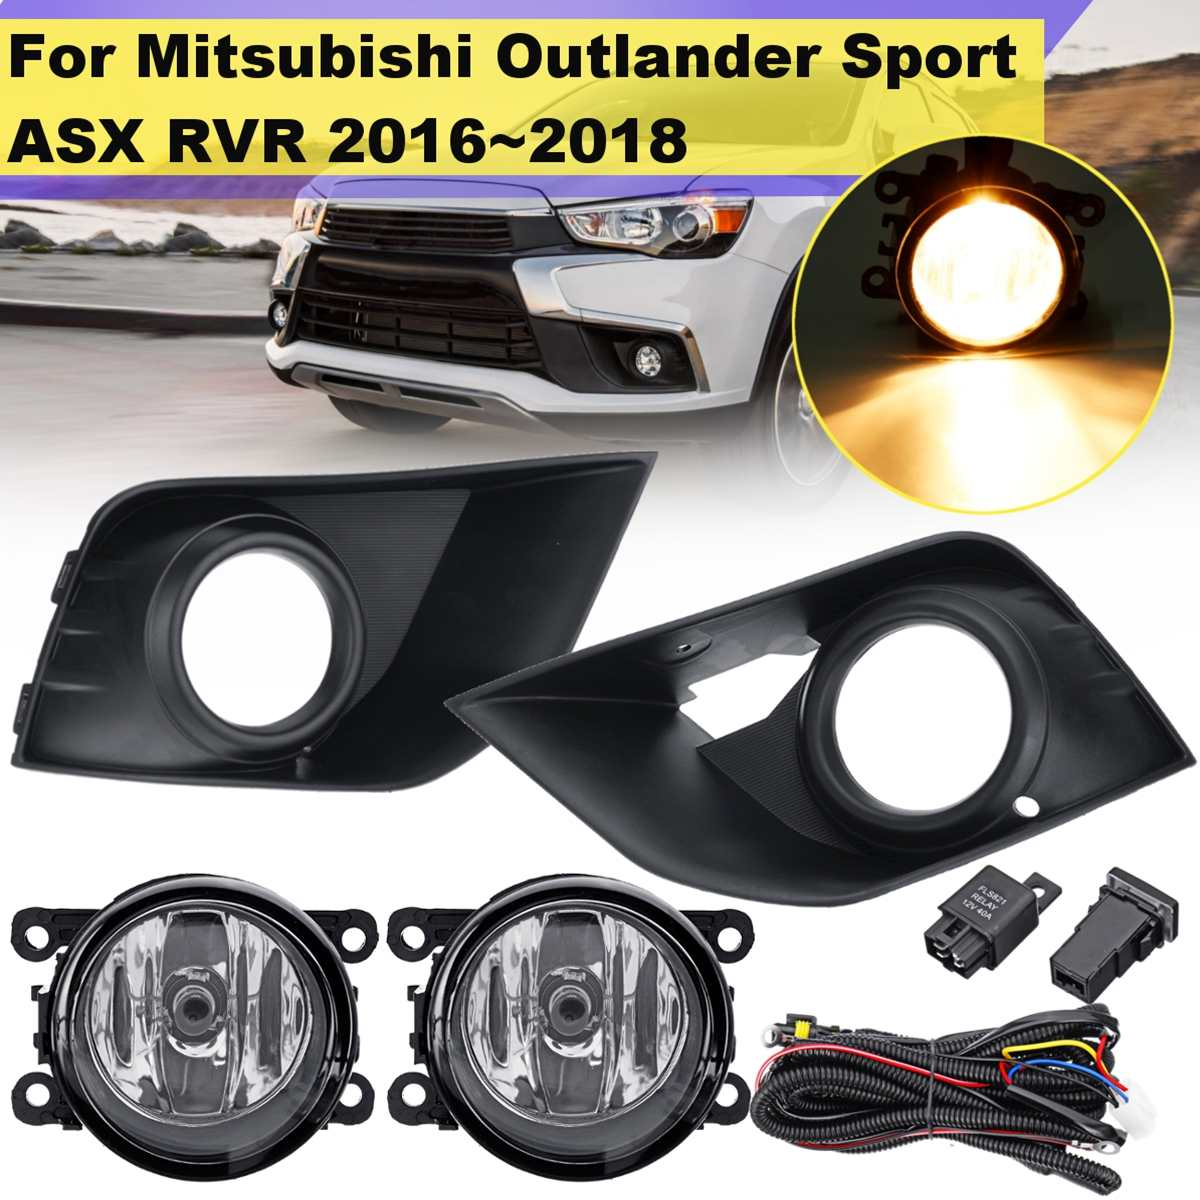 1 Pair Car Bumper Fog Light Lamp With Cover Frame Grill For Mitsubishi Outlander Sport Asx Rvr 2016 2017 2018 Styling Drl Regular Tea Drinking Improves Your Health